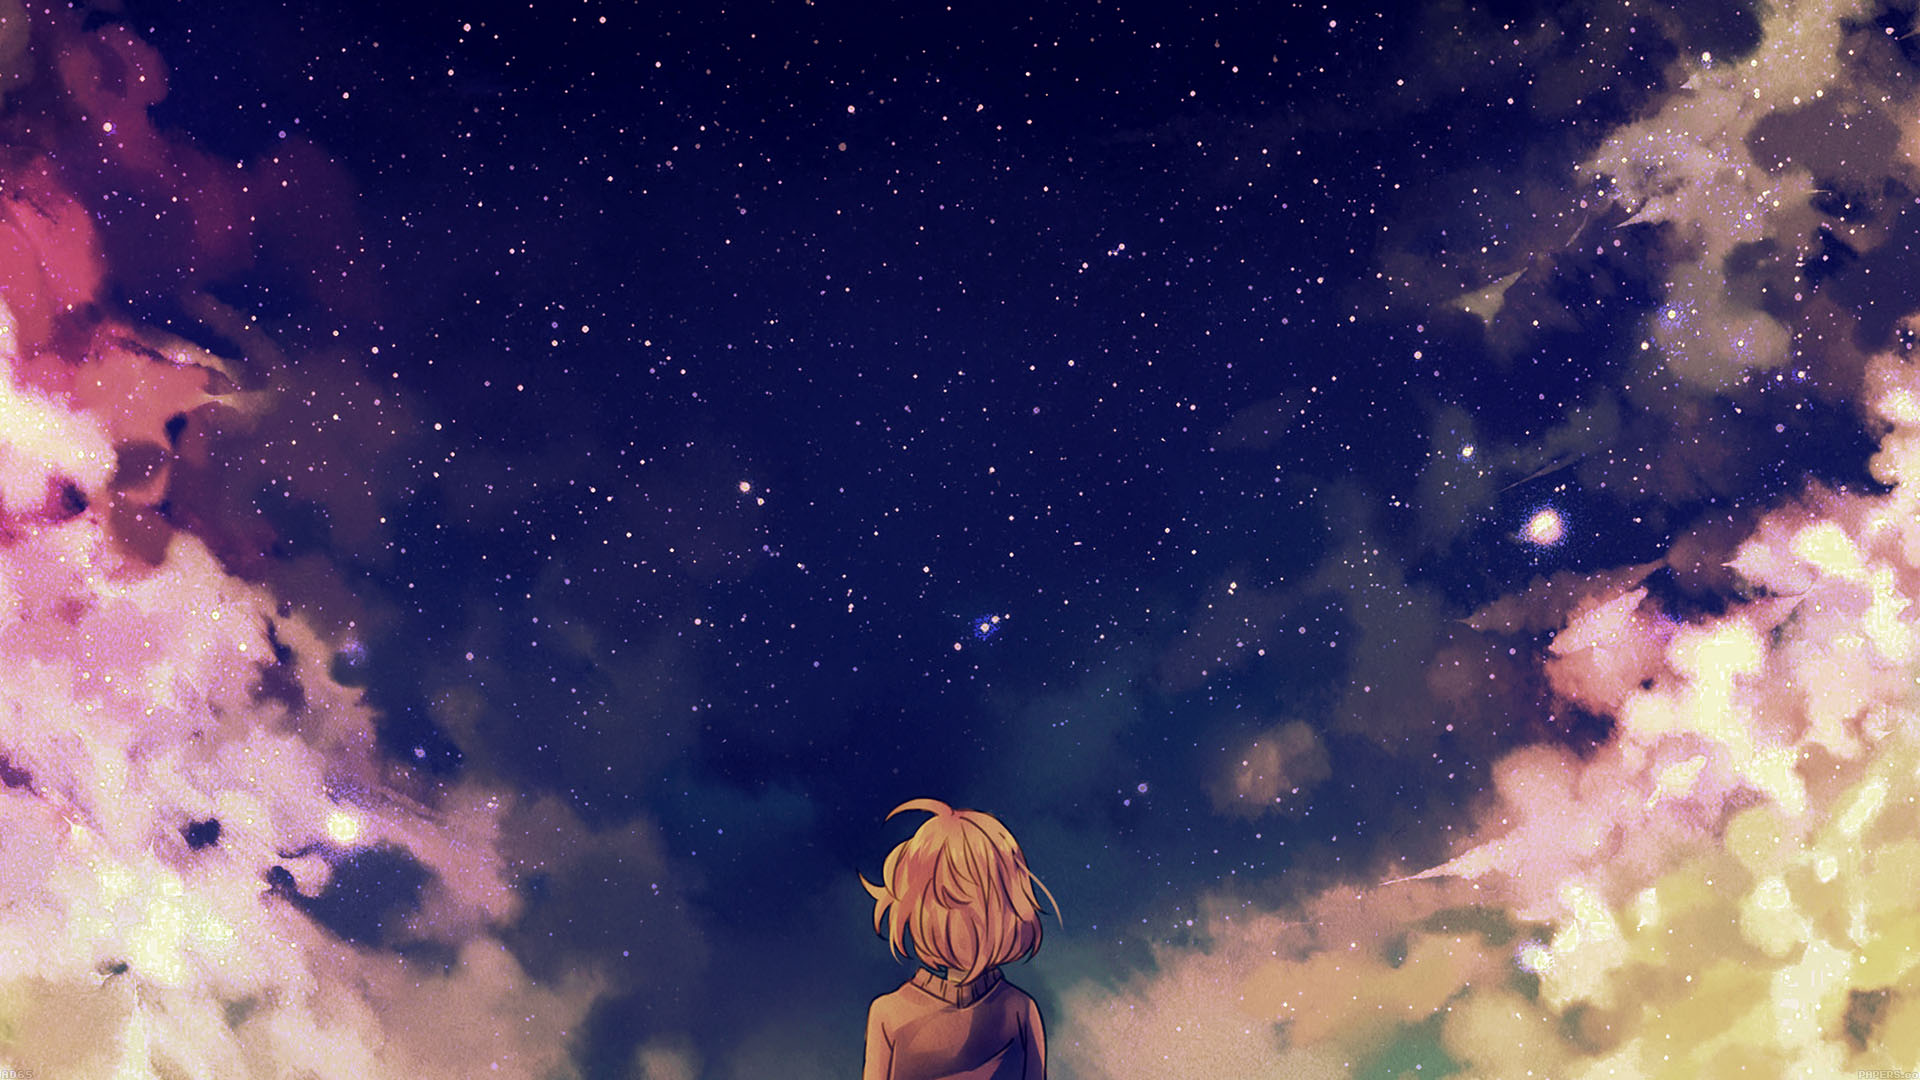 Ad65 starry space illust anime girl wallpaper - Wallpaper computer anime ...